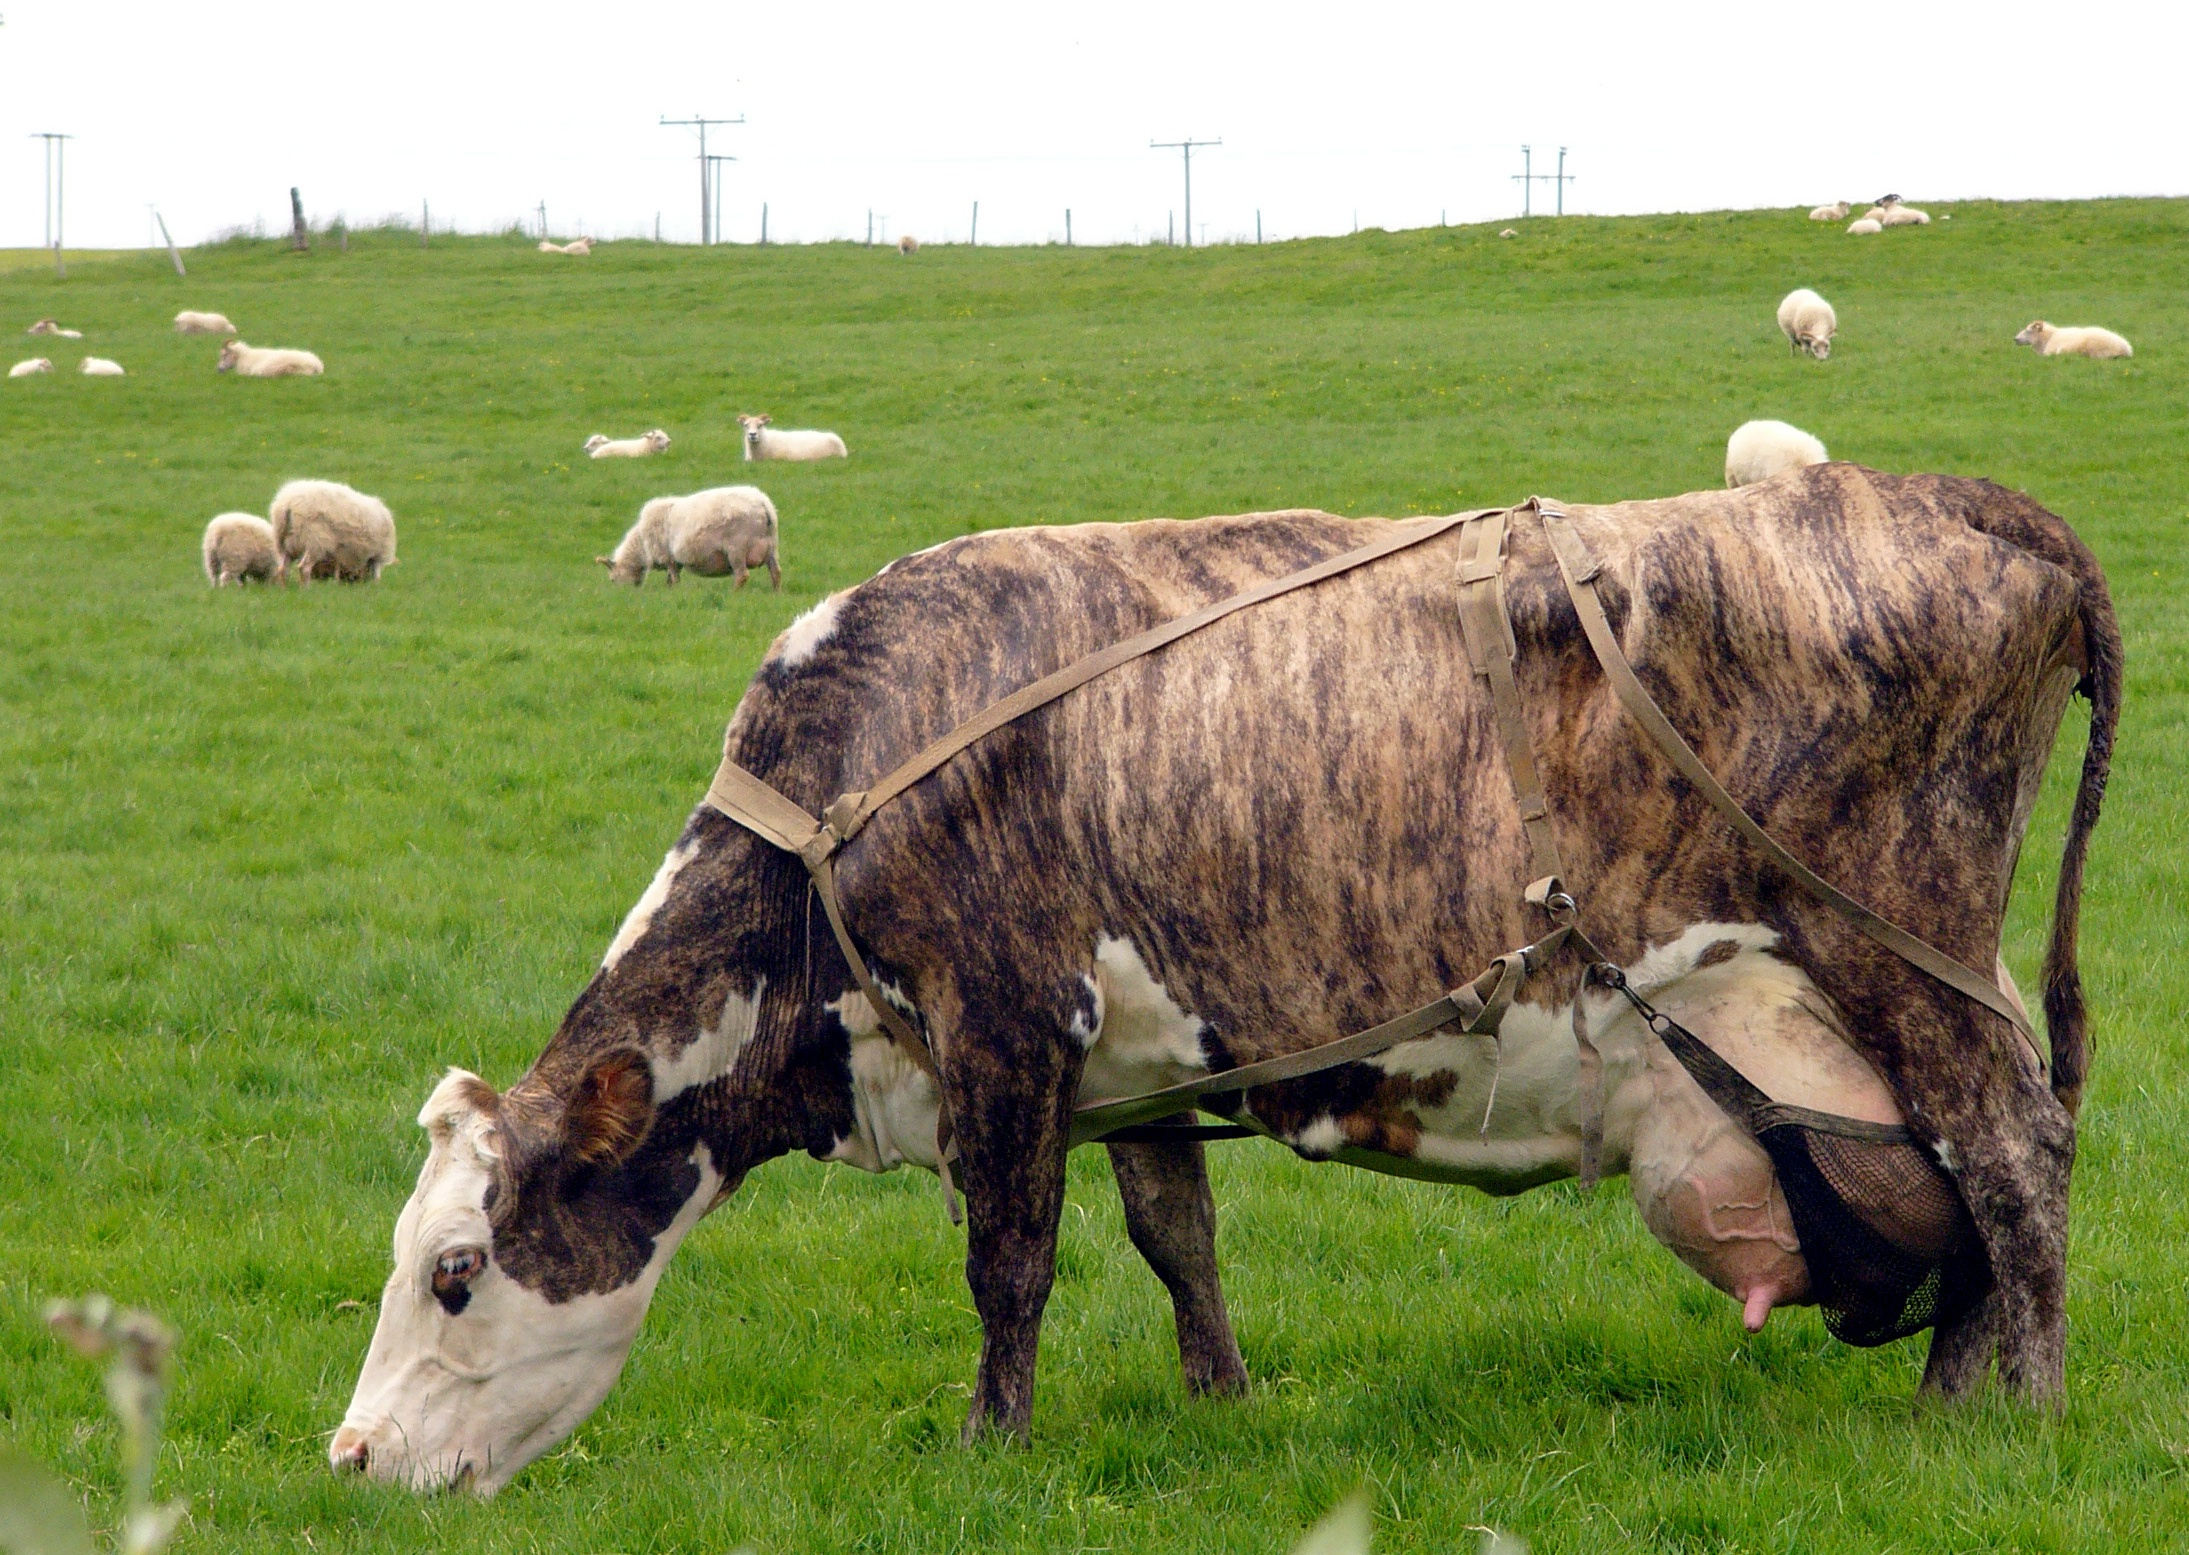 File:Cow in Iceland.jpg - Wikipedia, the free encyclopedia